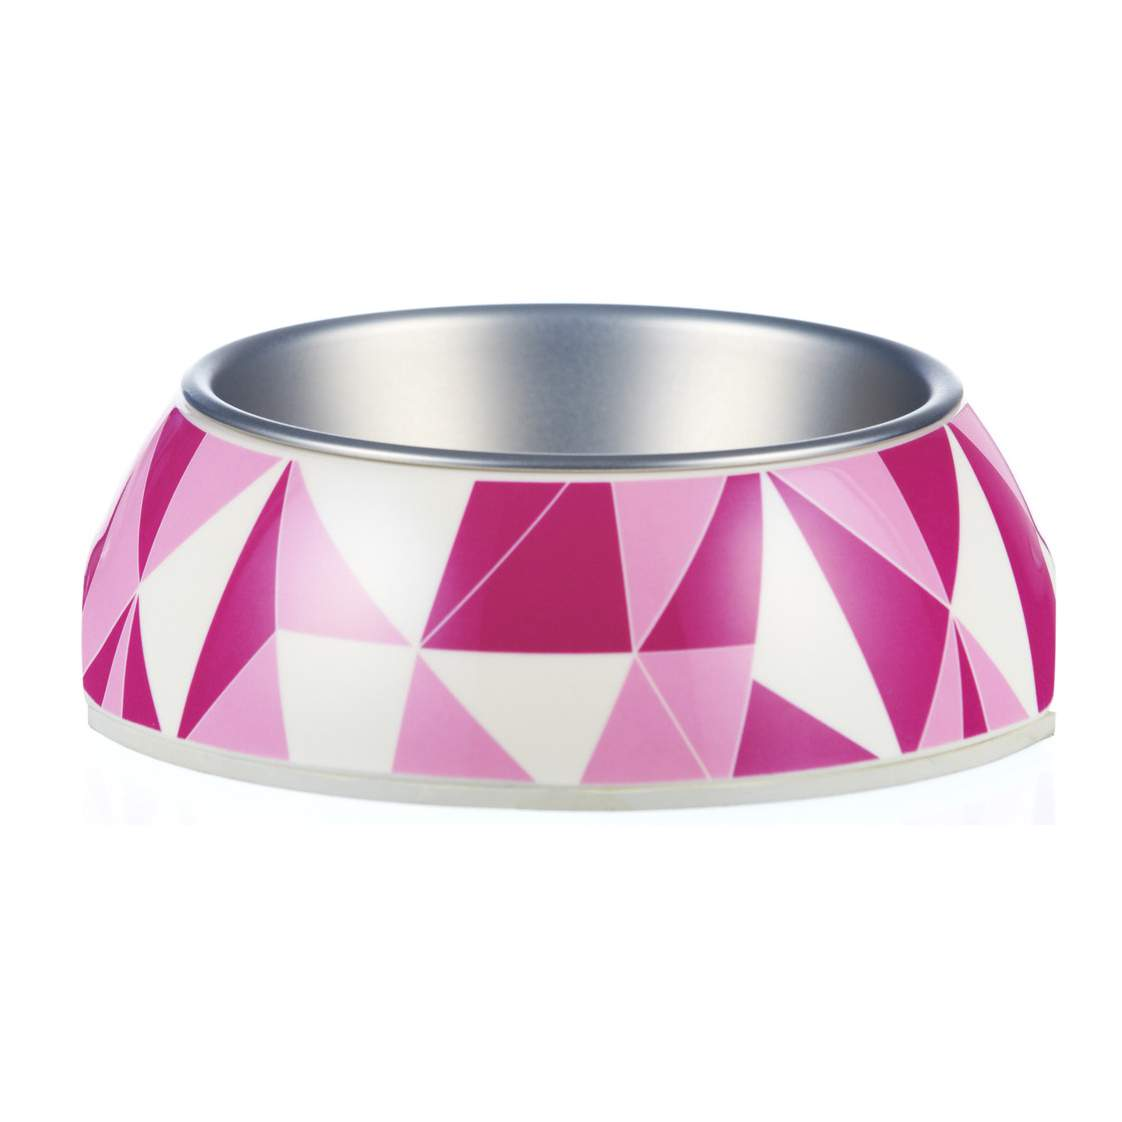 Gummi Pets Federation Dog Bowl Pink | The Design Gift Shop